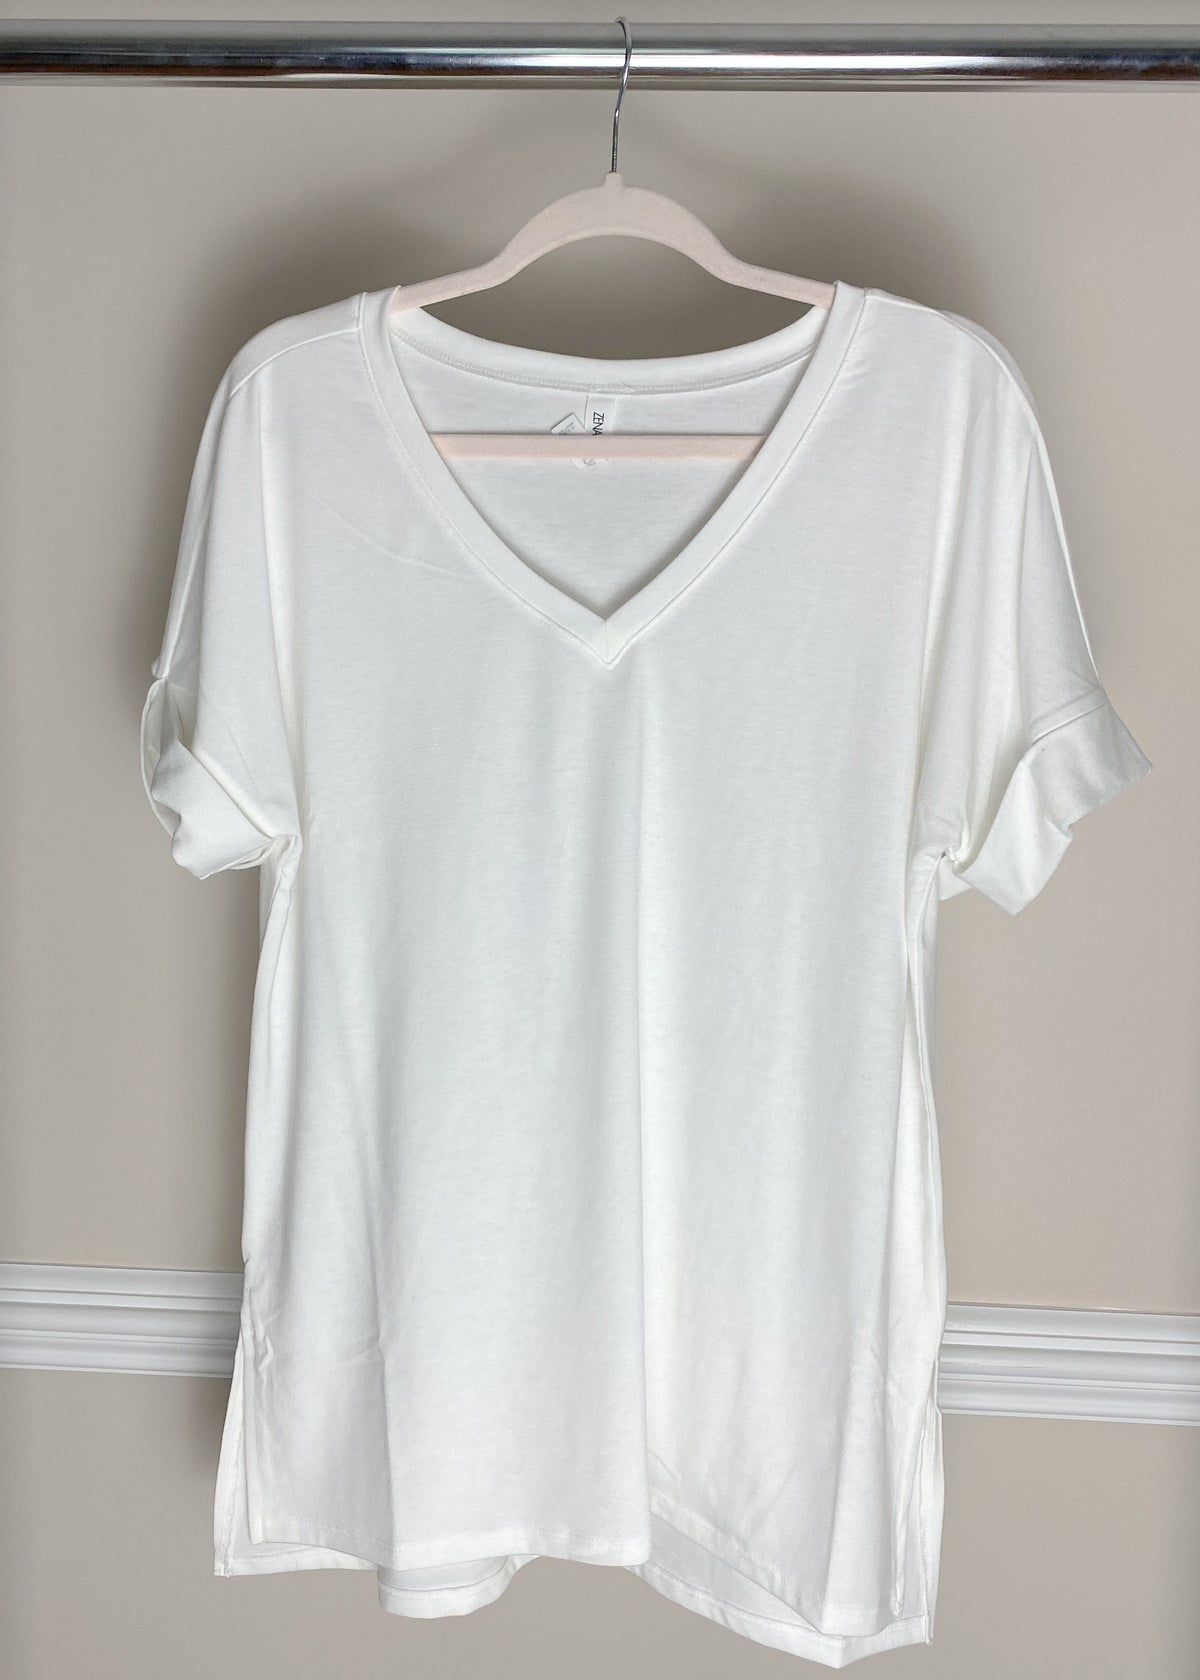 'Roll With It' Ivory Rolled Sleeve Boyfriend V-Neck Tee